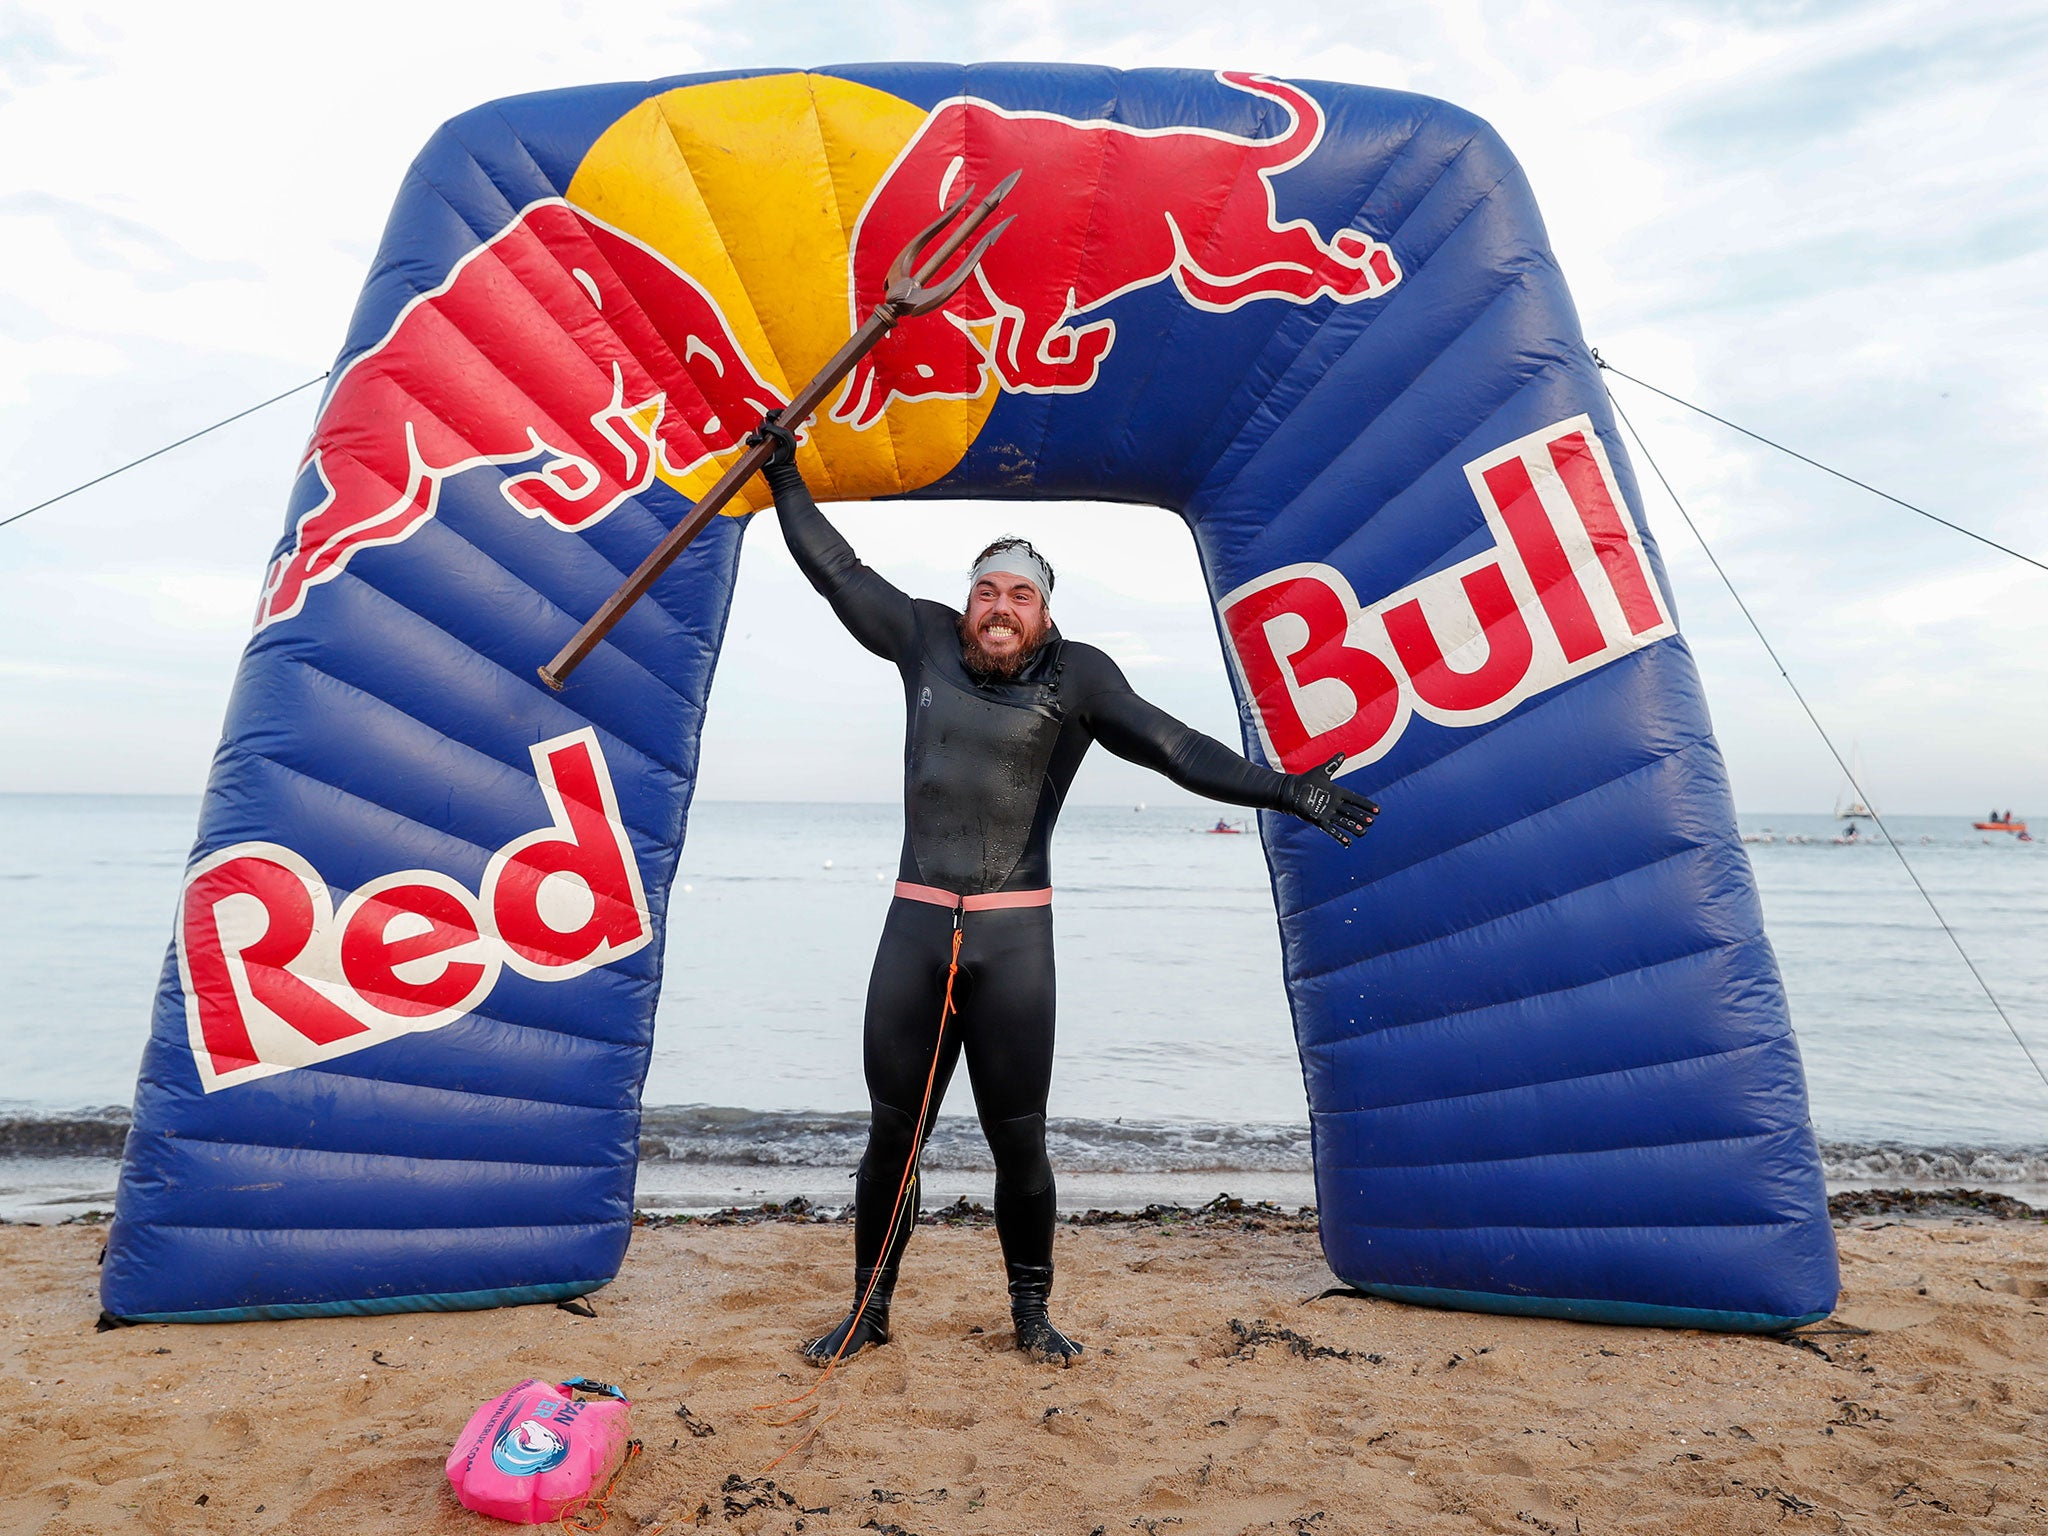 Ross Edgley: Adventurer becomes first person to swim around entire